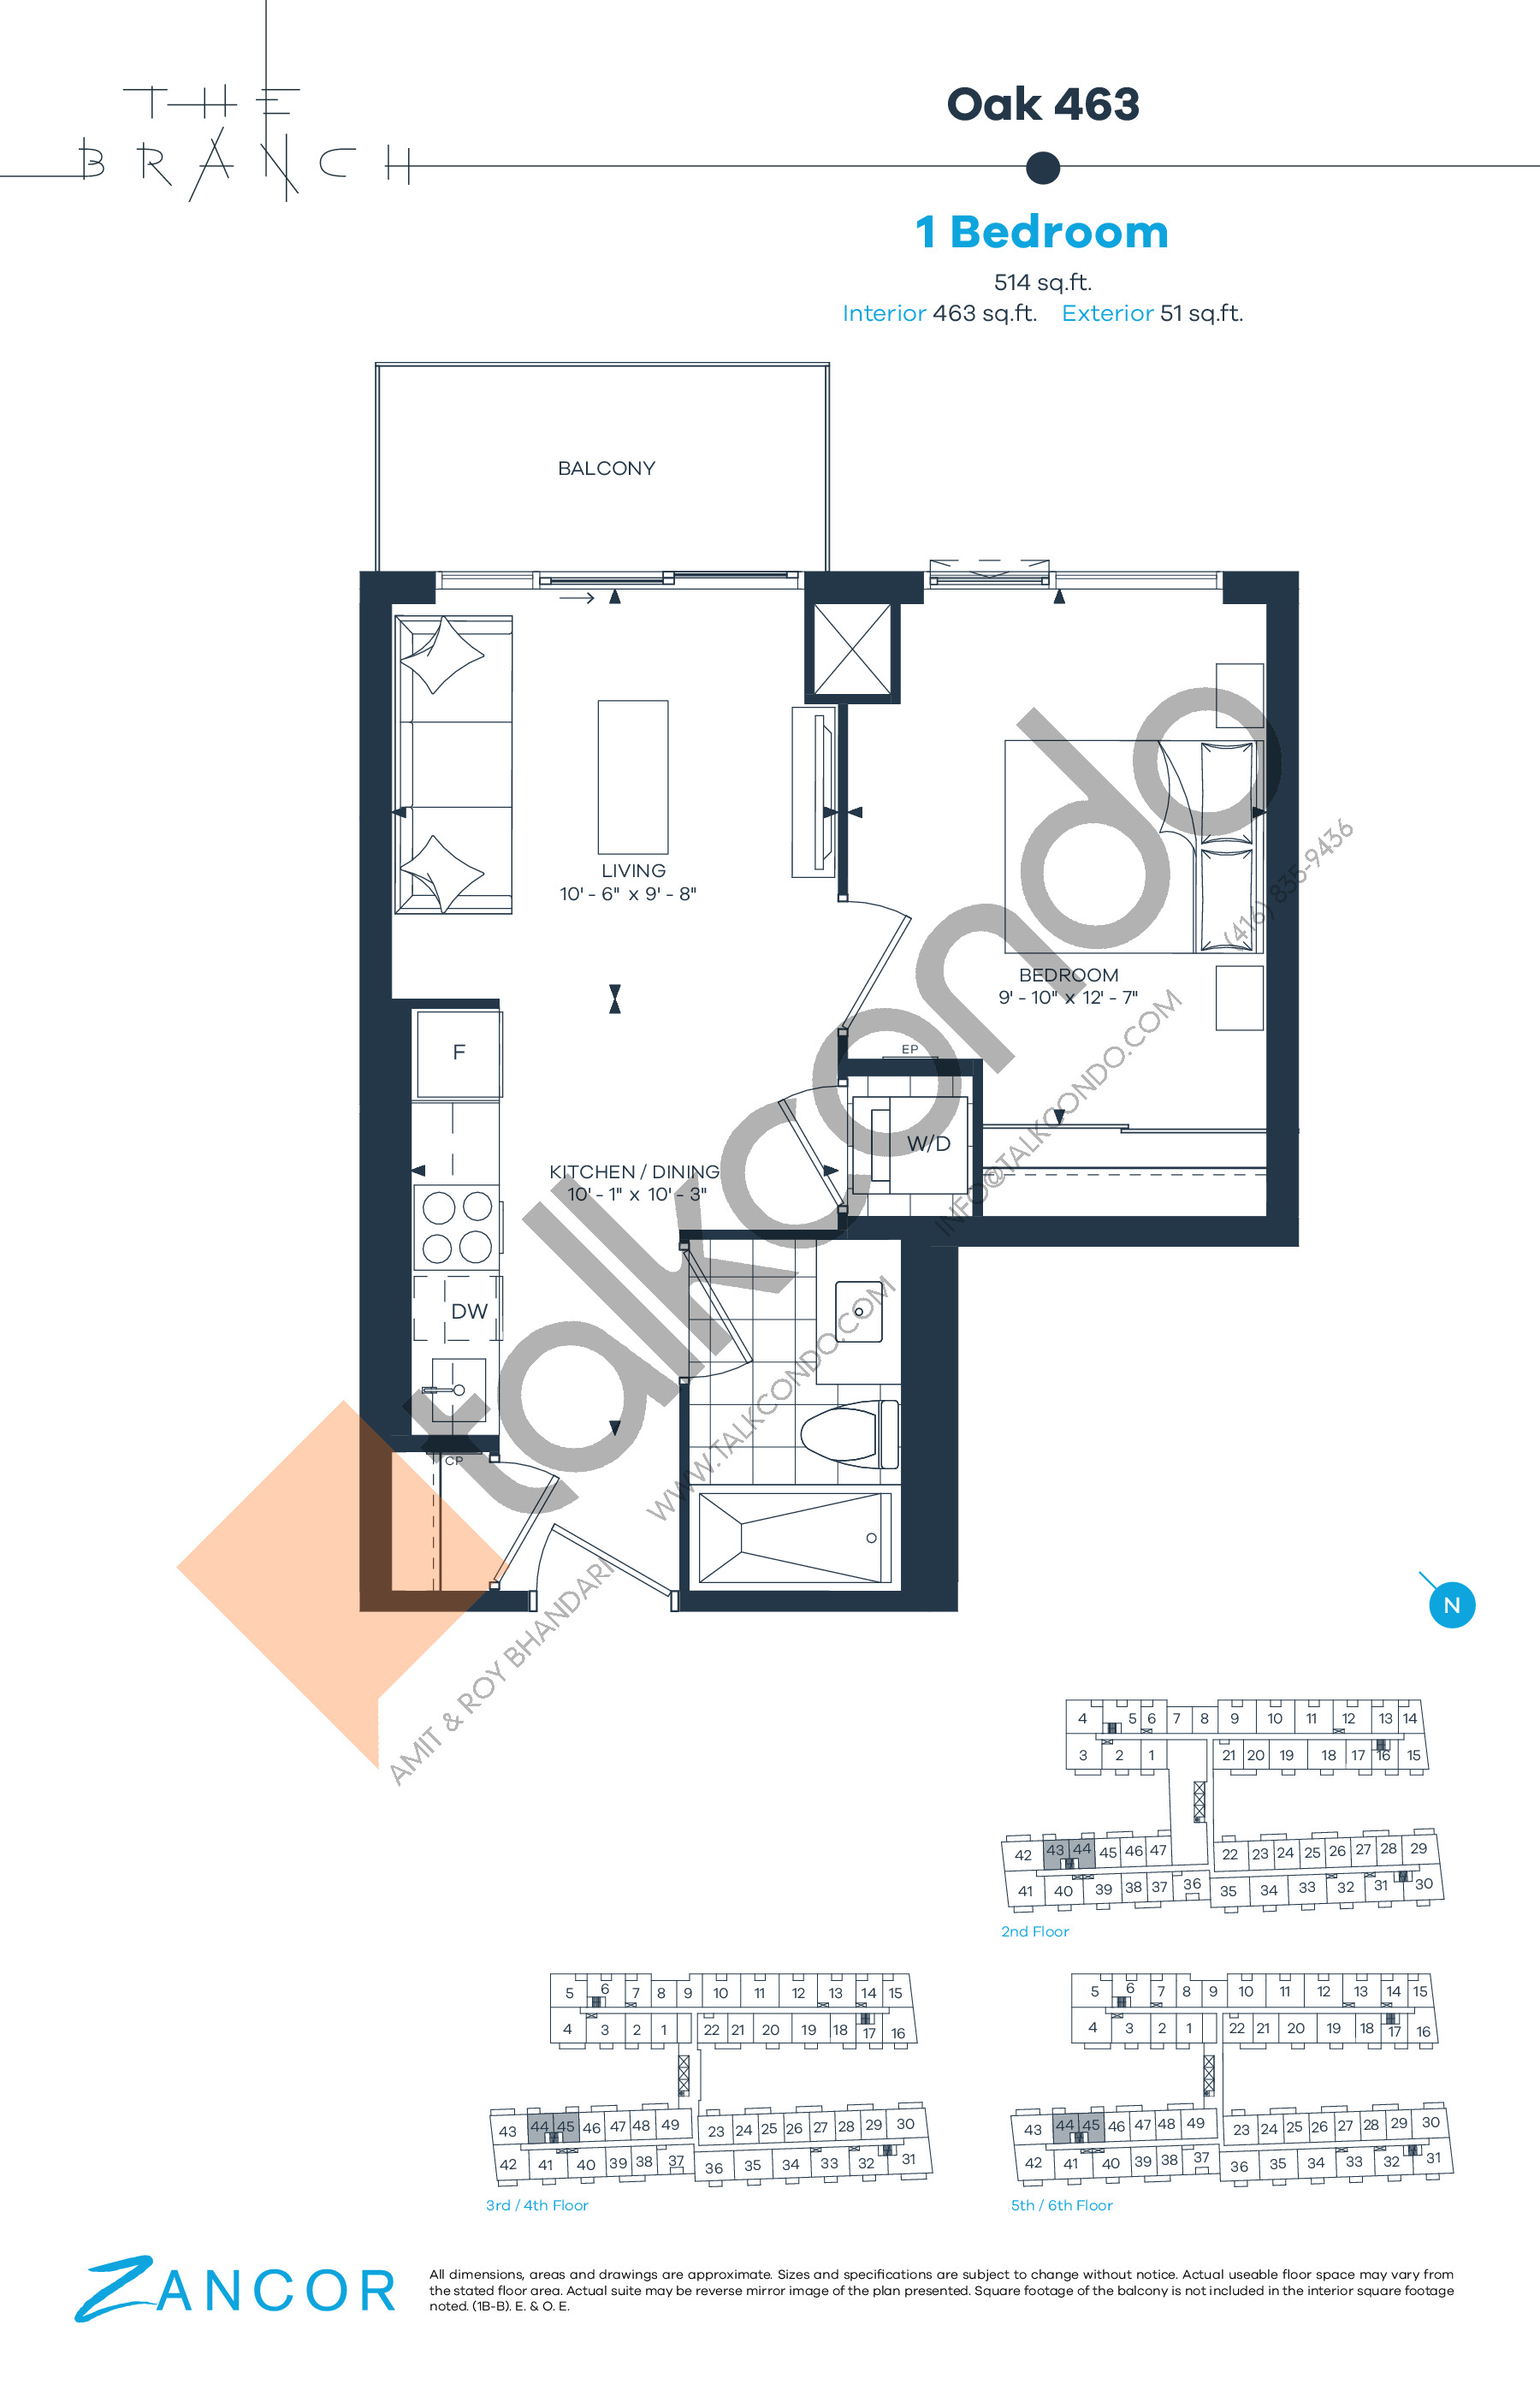 Oak 463 Floor Plan at The Branch Condos - 463 sq.ft